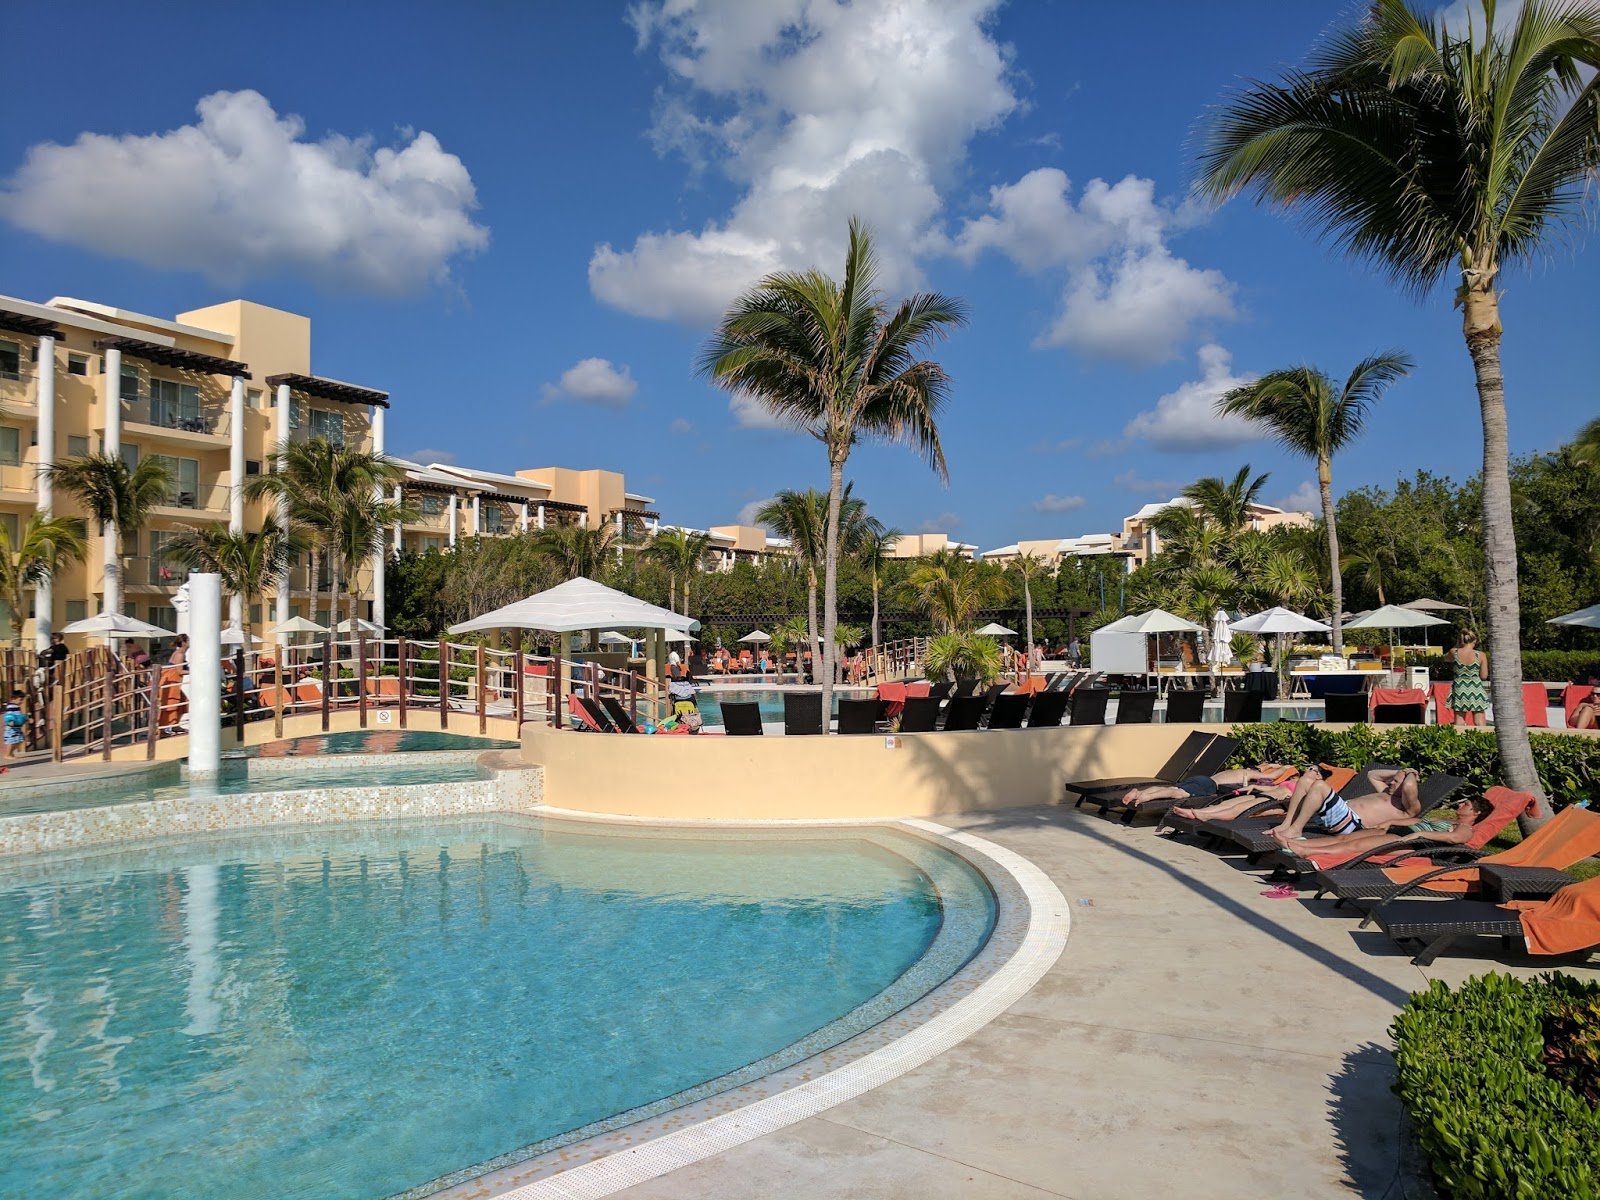 Trips With Angie Best Of All Inclusive Resorts - Cancun all inclusive family resorts